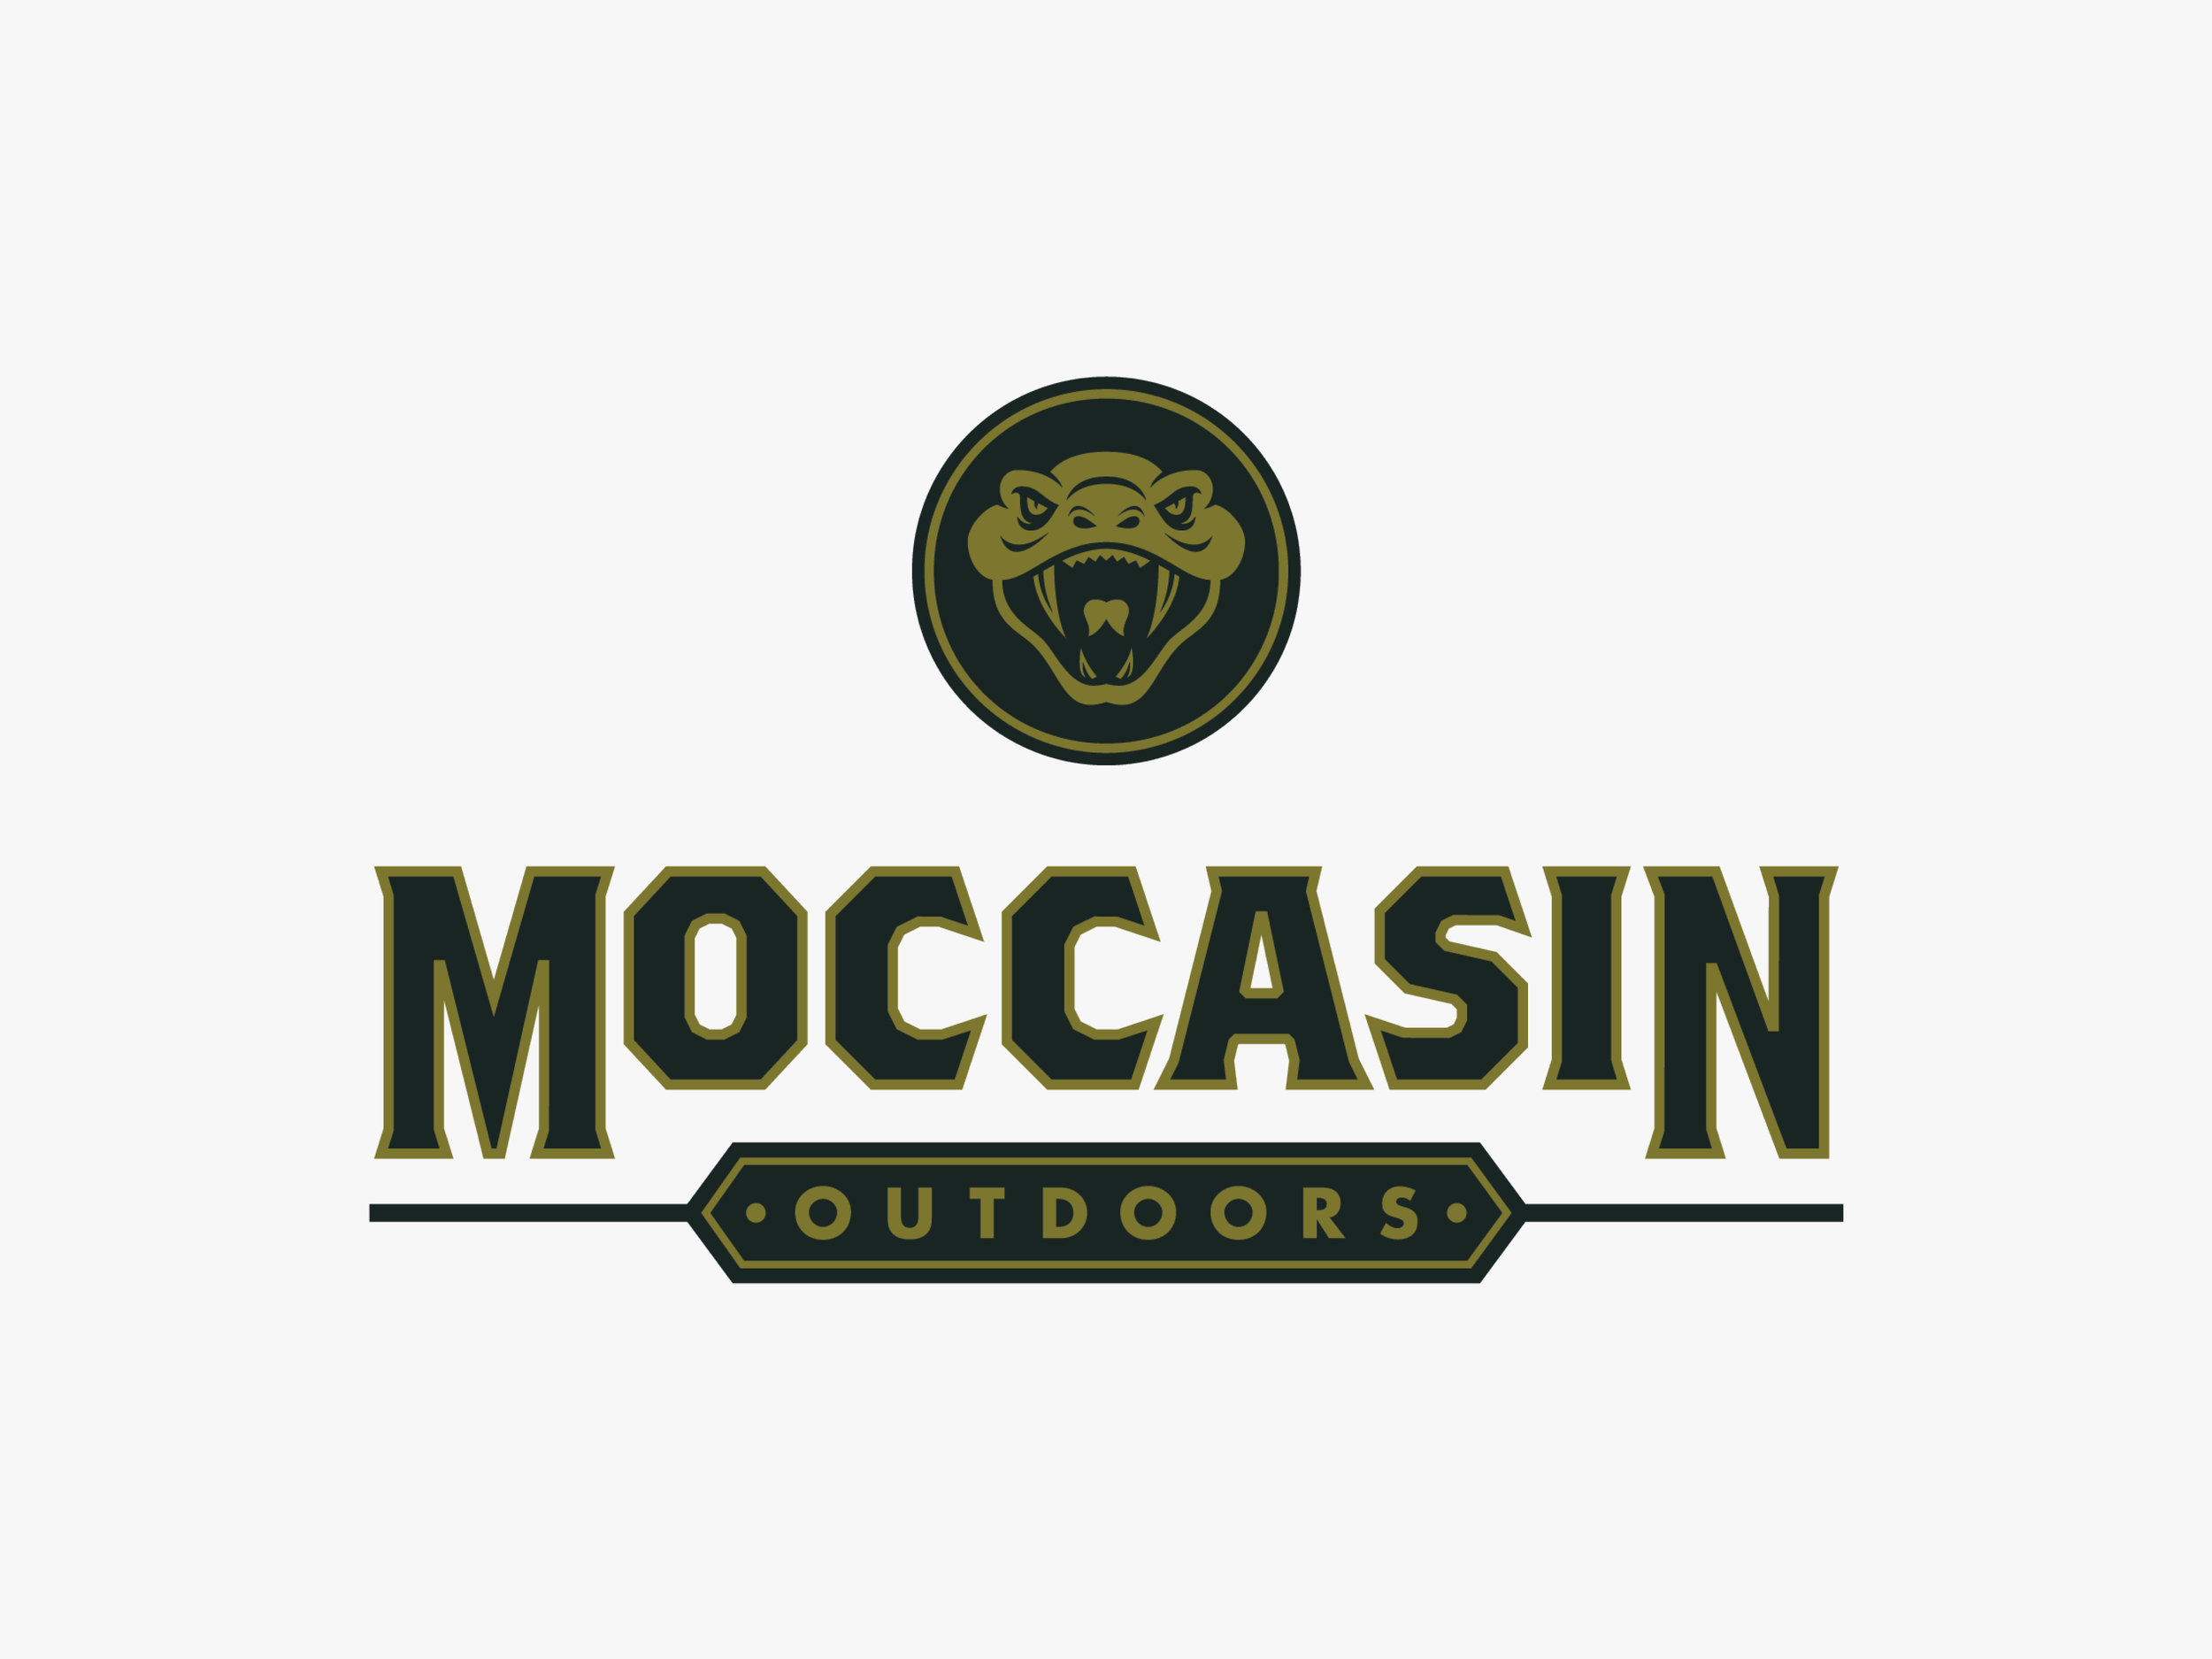 Moccasin Outdoors